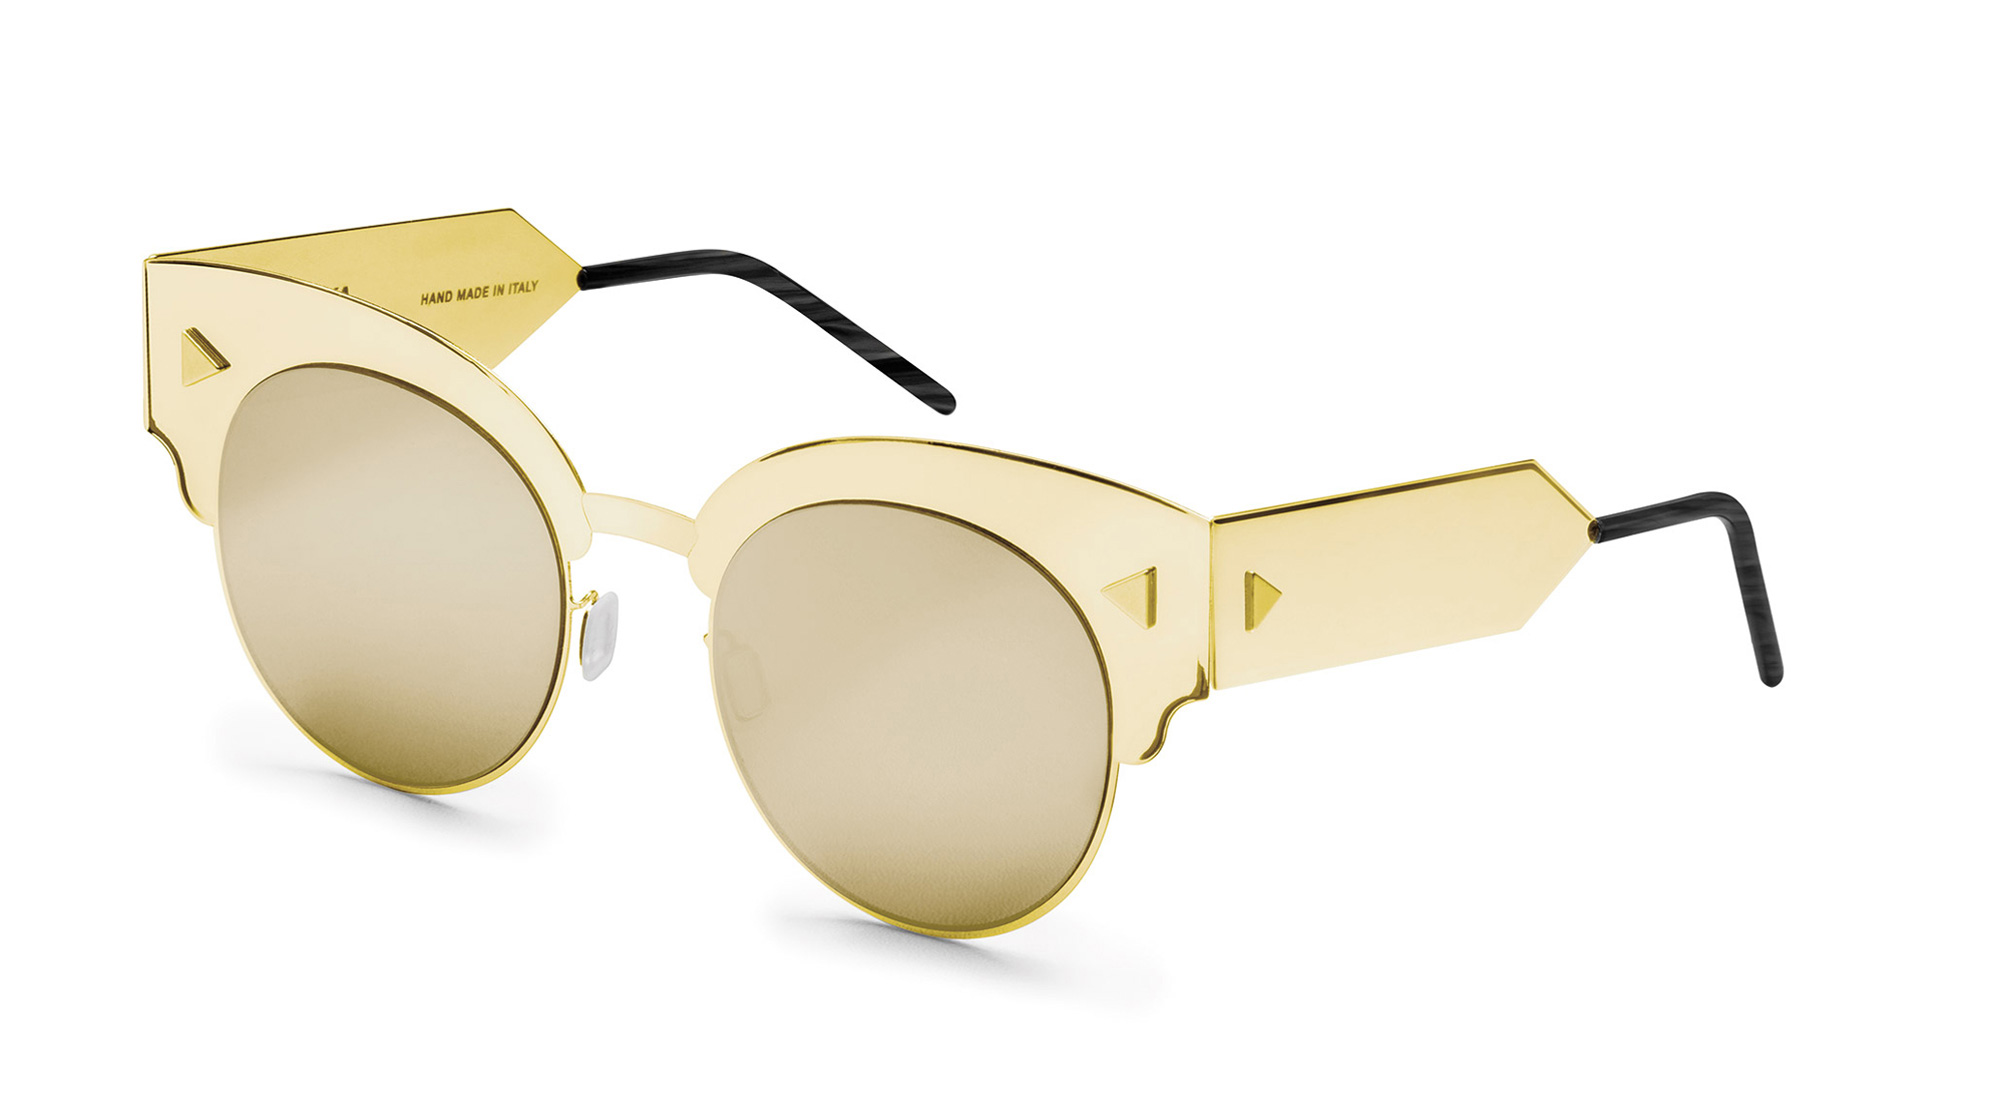 MILKYWAY_Eyewear_SOYA_Gold_3-4View